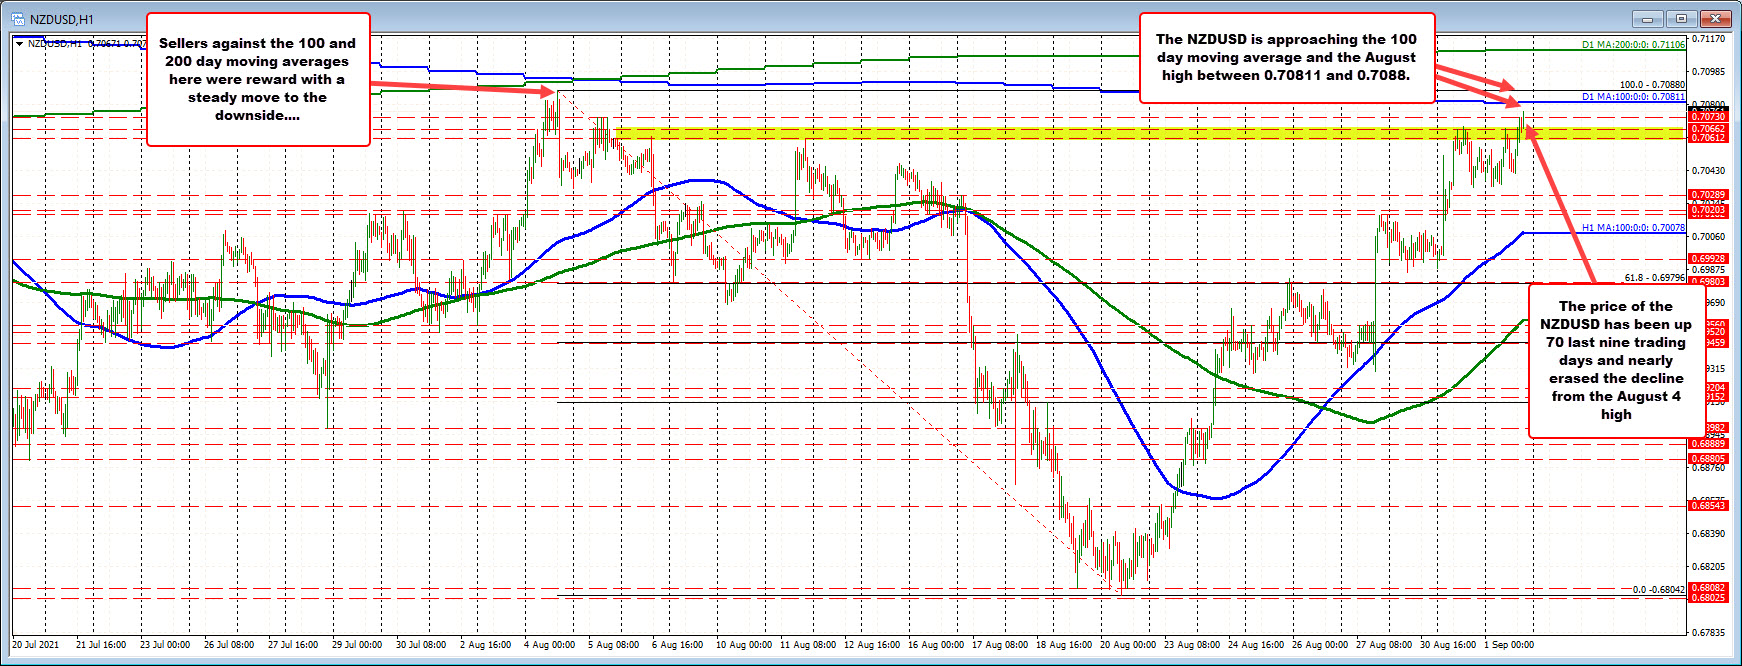 NZDUSD moves closer to its 100 day moving average